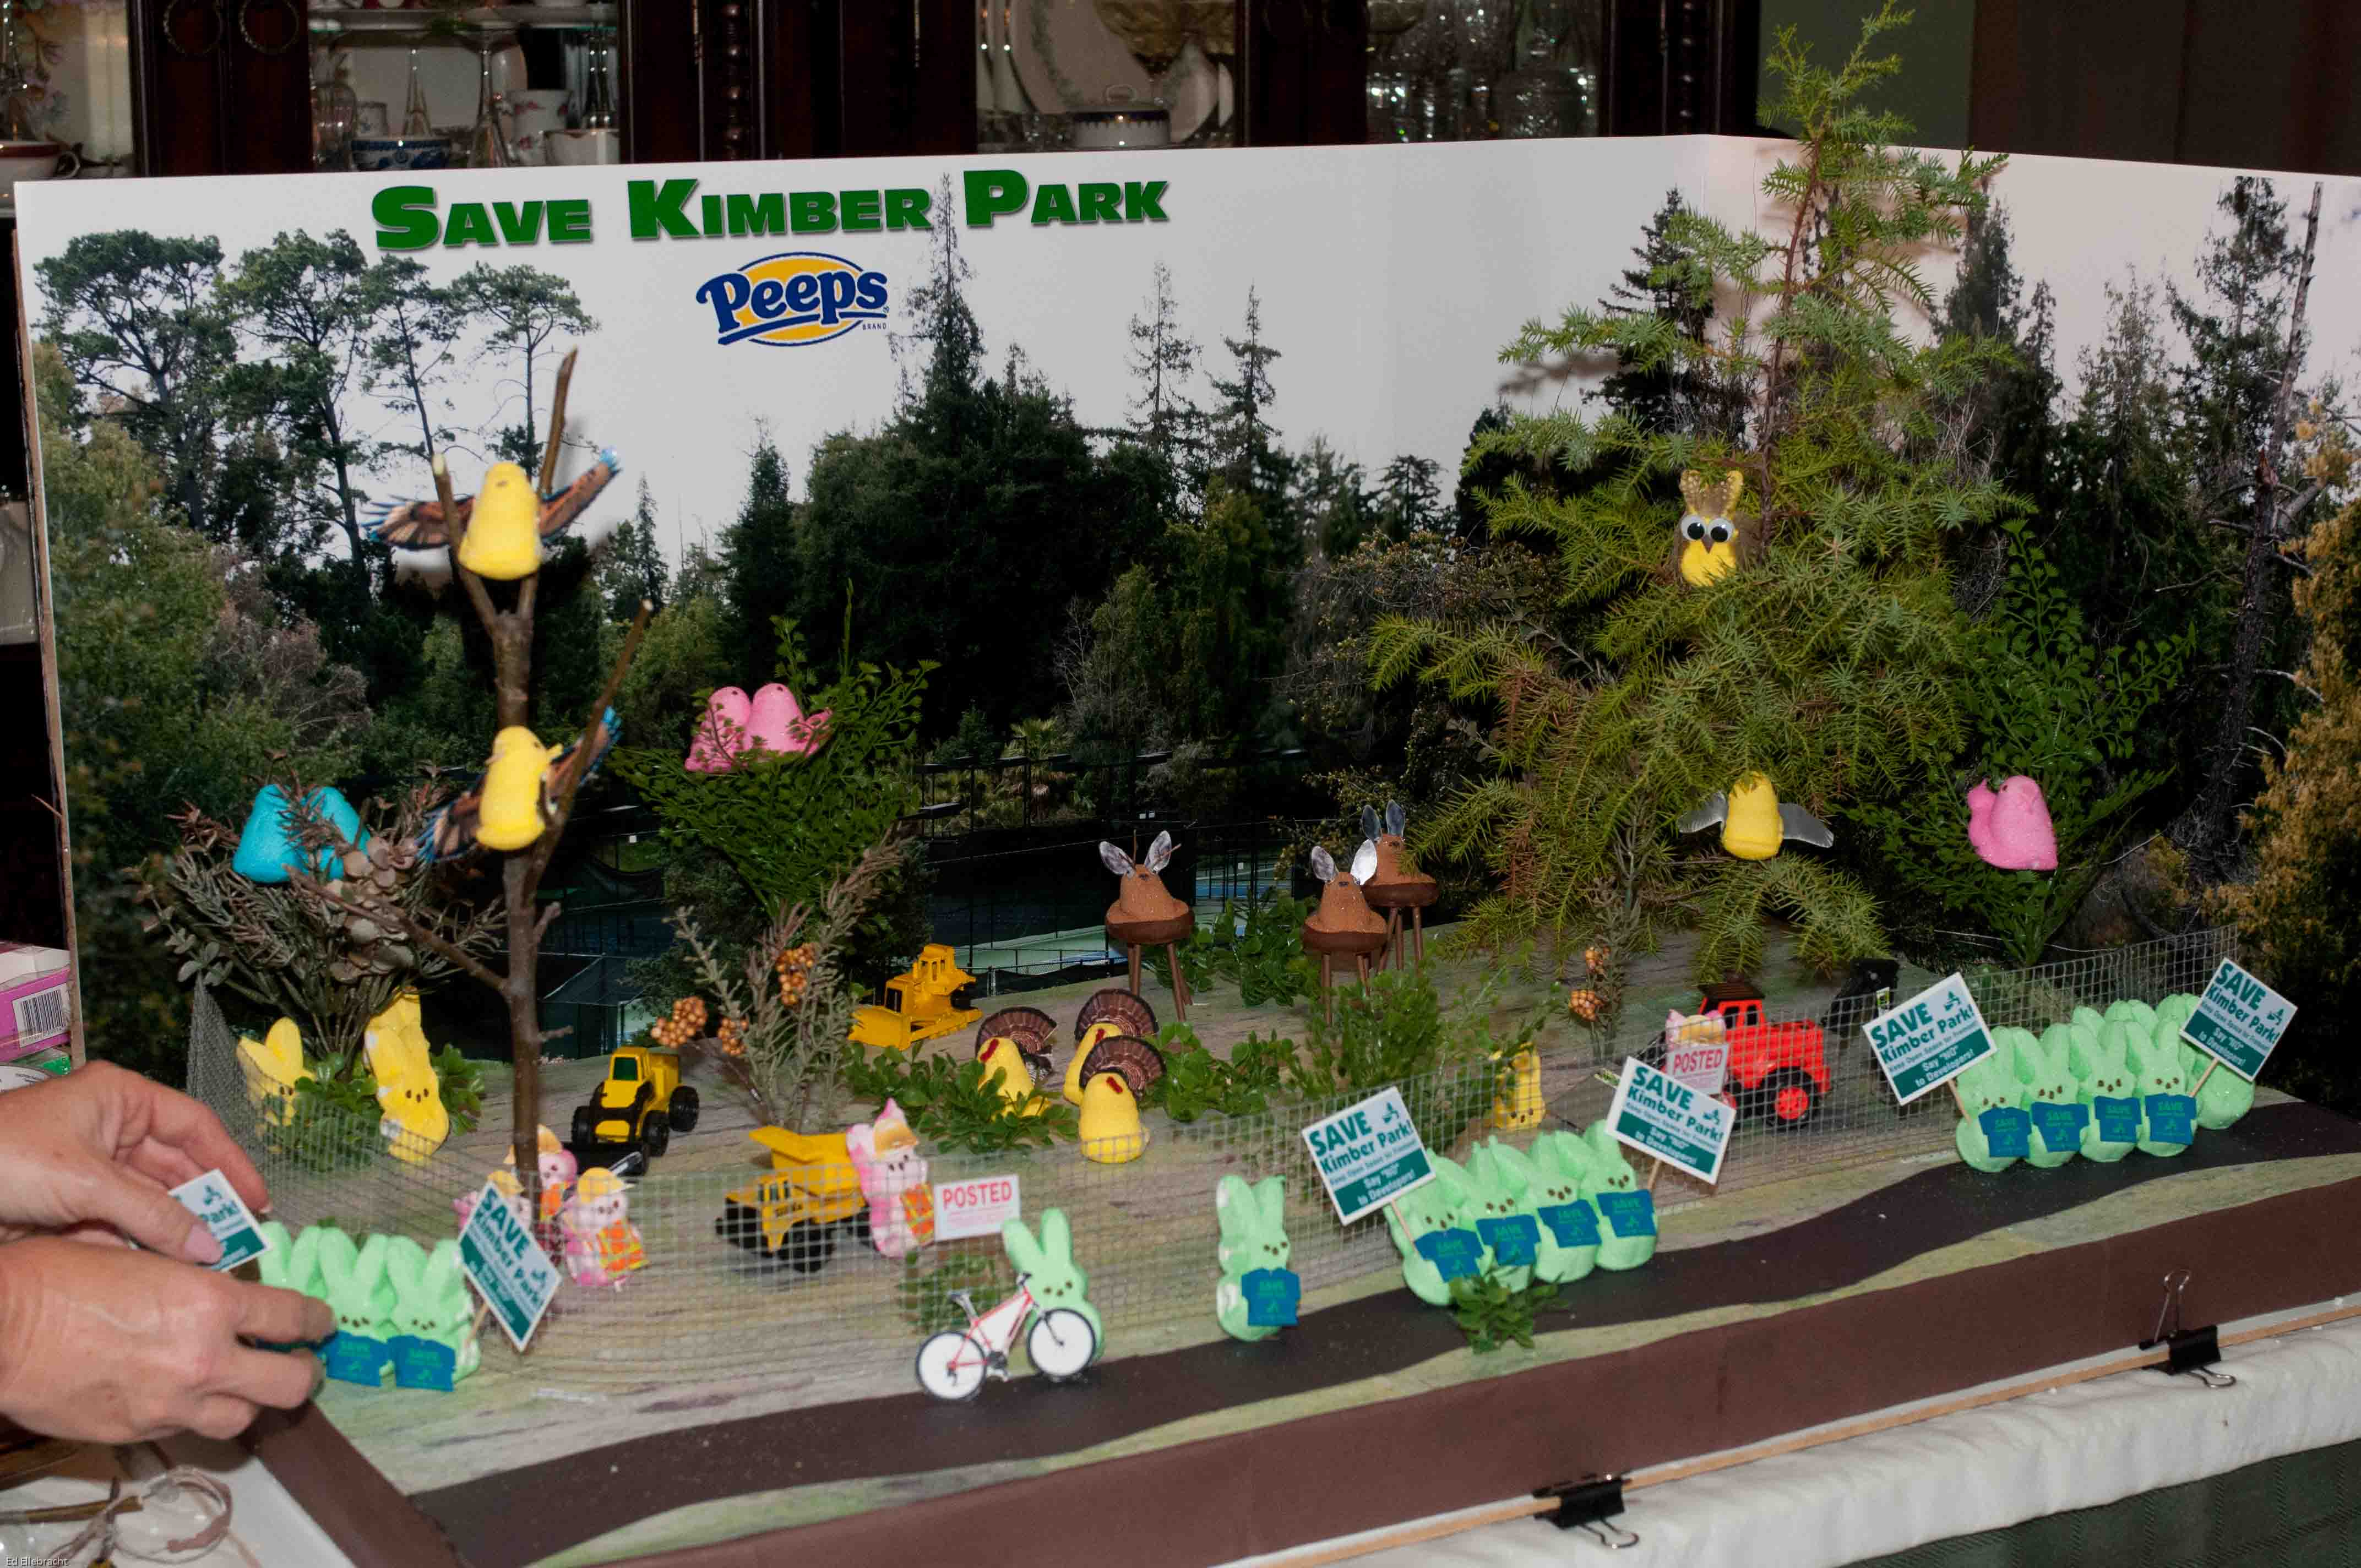 Park Diorama Images - Reverse Search